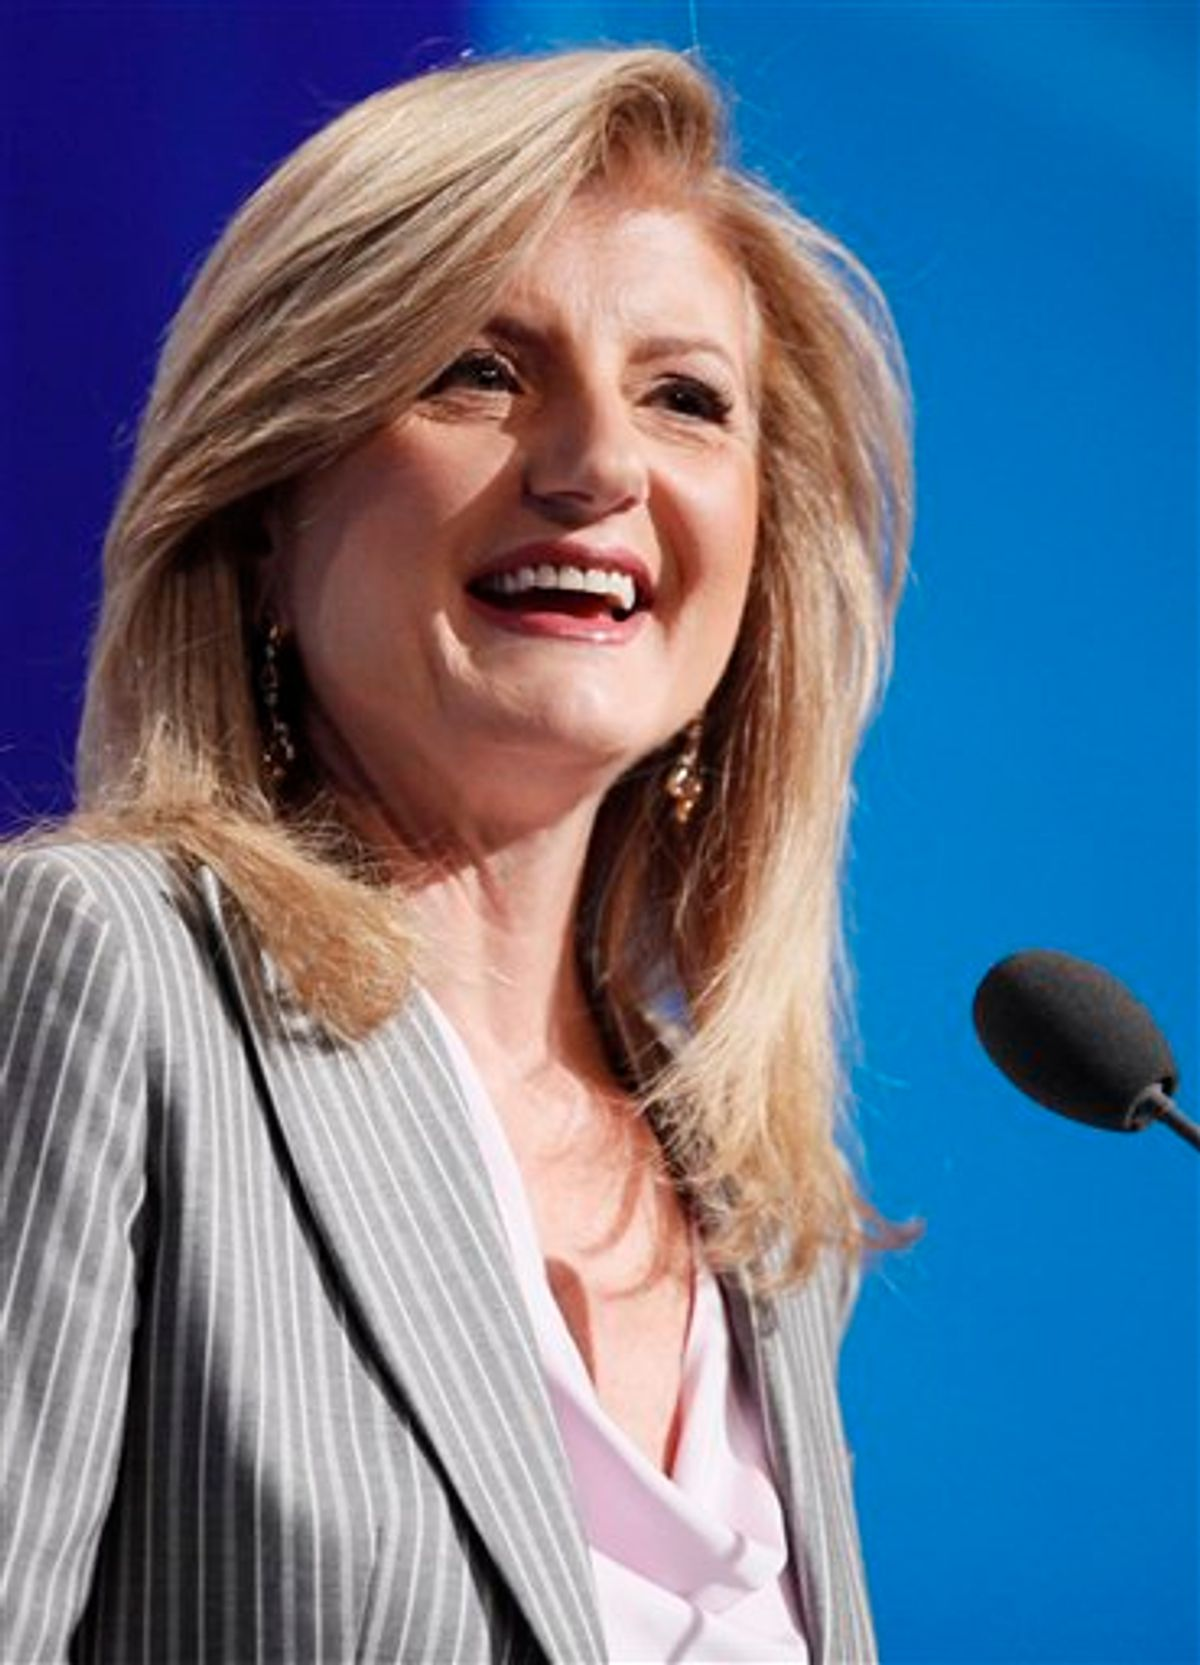 FILE - In this Sept. 23, 2010 file photo, Arianna Huffington speaks at the Clinton Global Initiative in New York.   It was announced Monday Feb. 7, 2011 that AOL Inc. is buying online news hub Huffington Post and that Huffington will be put in charge of AOL's growing array of content.  (AP Photo/Mark Lennihan, file) (AP)